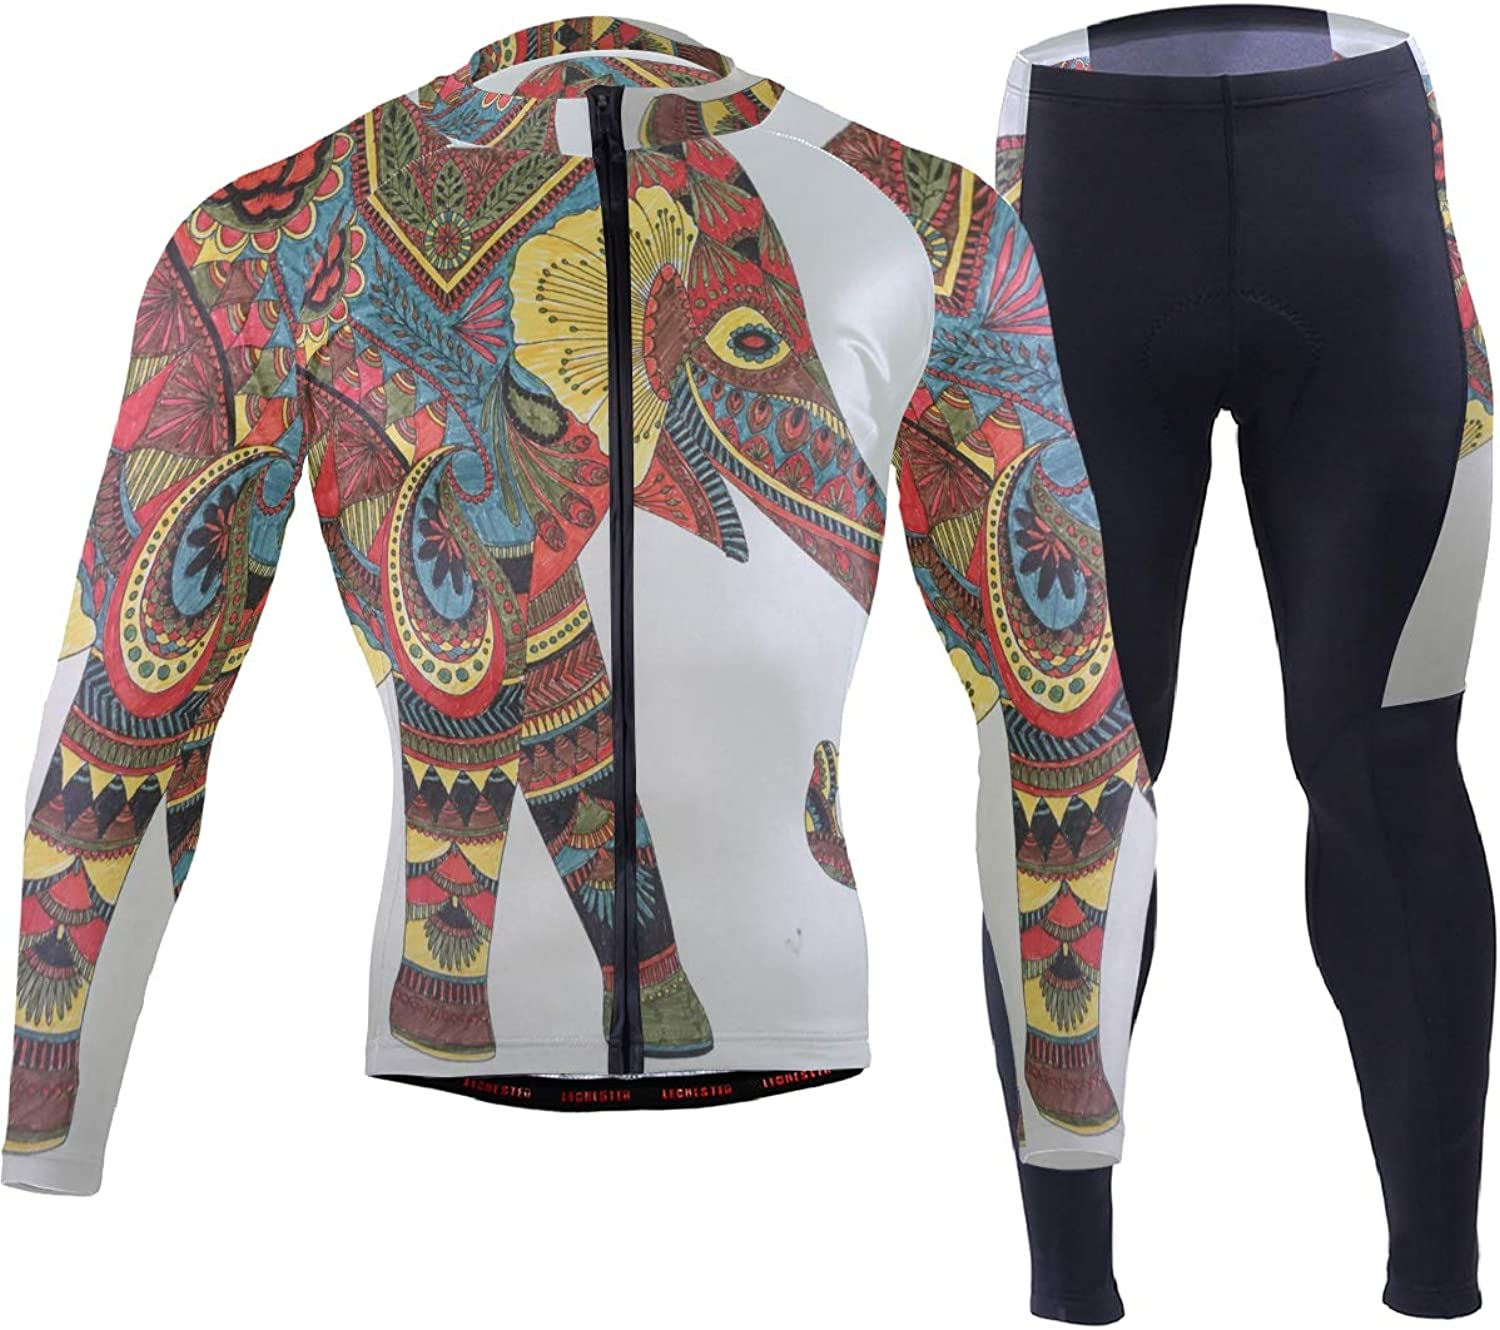 FAJRO Indian Style Eleophone Drawing Sportswear Suit Bike Outfit Set Breathable Quick Dry 3D Padded Pants